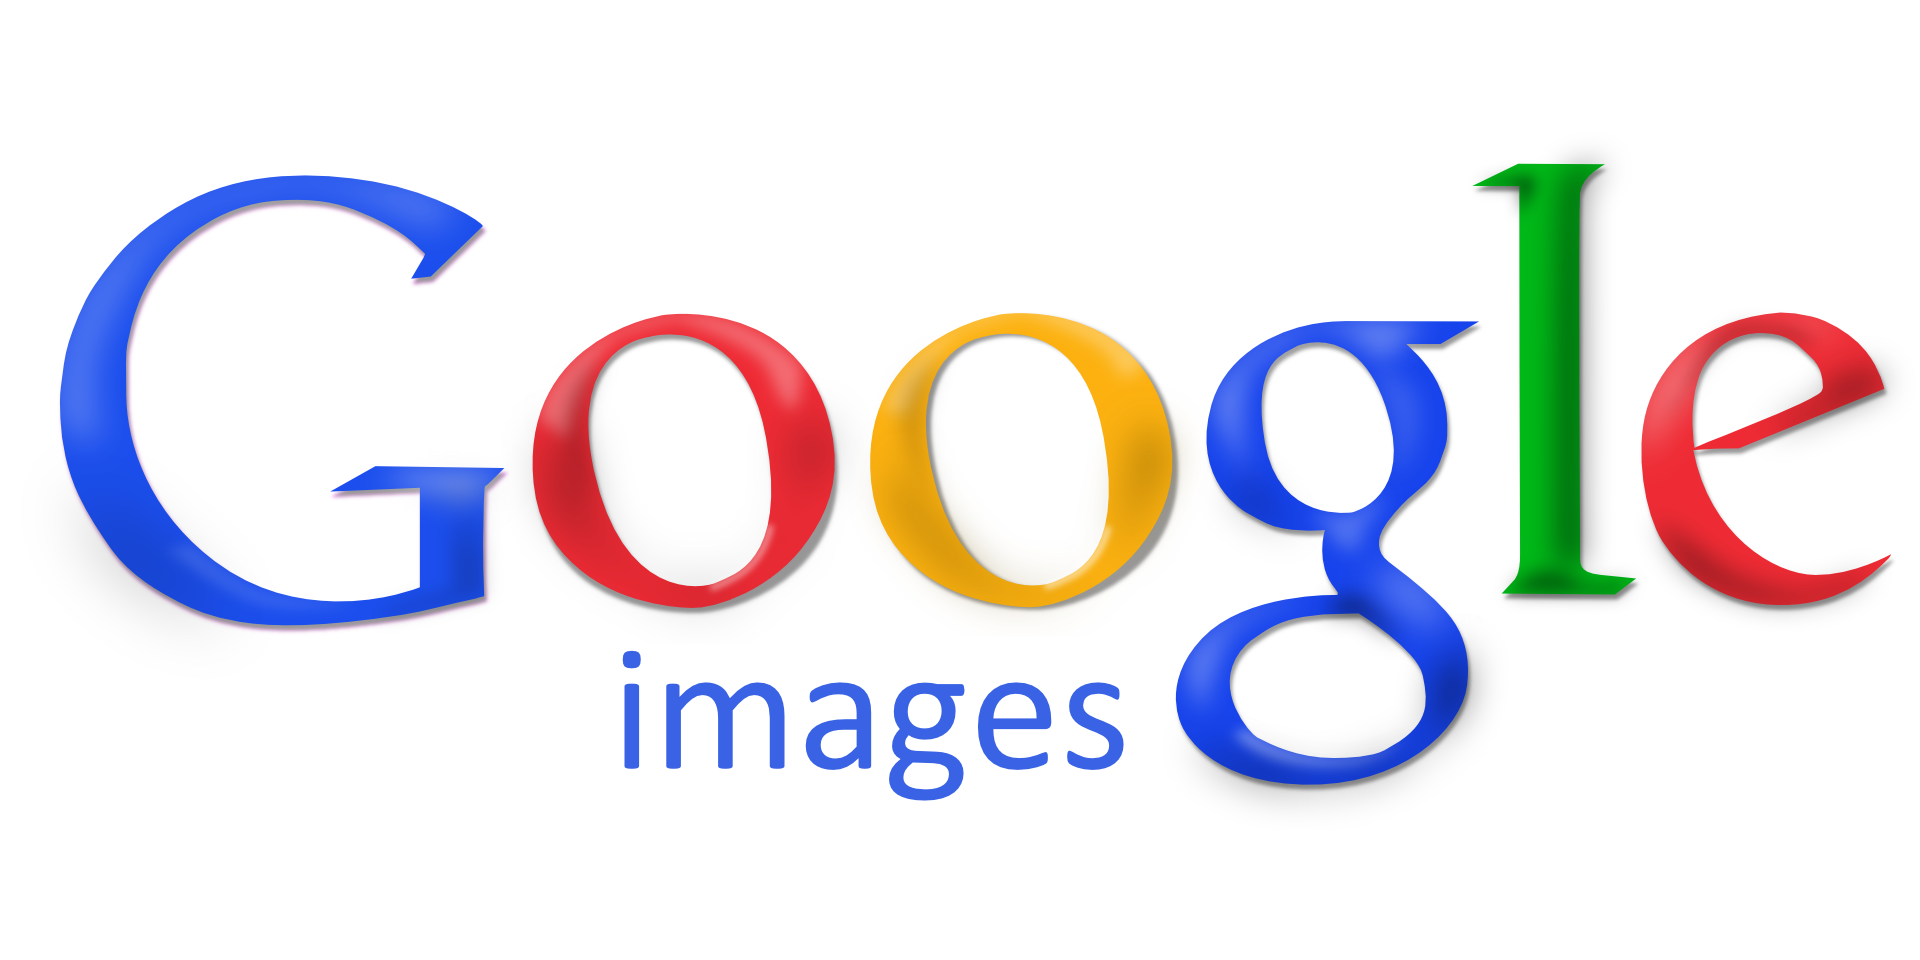 Google Image Search Scam - Reverse Photo Lookup